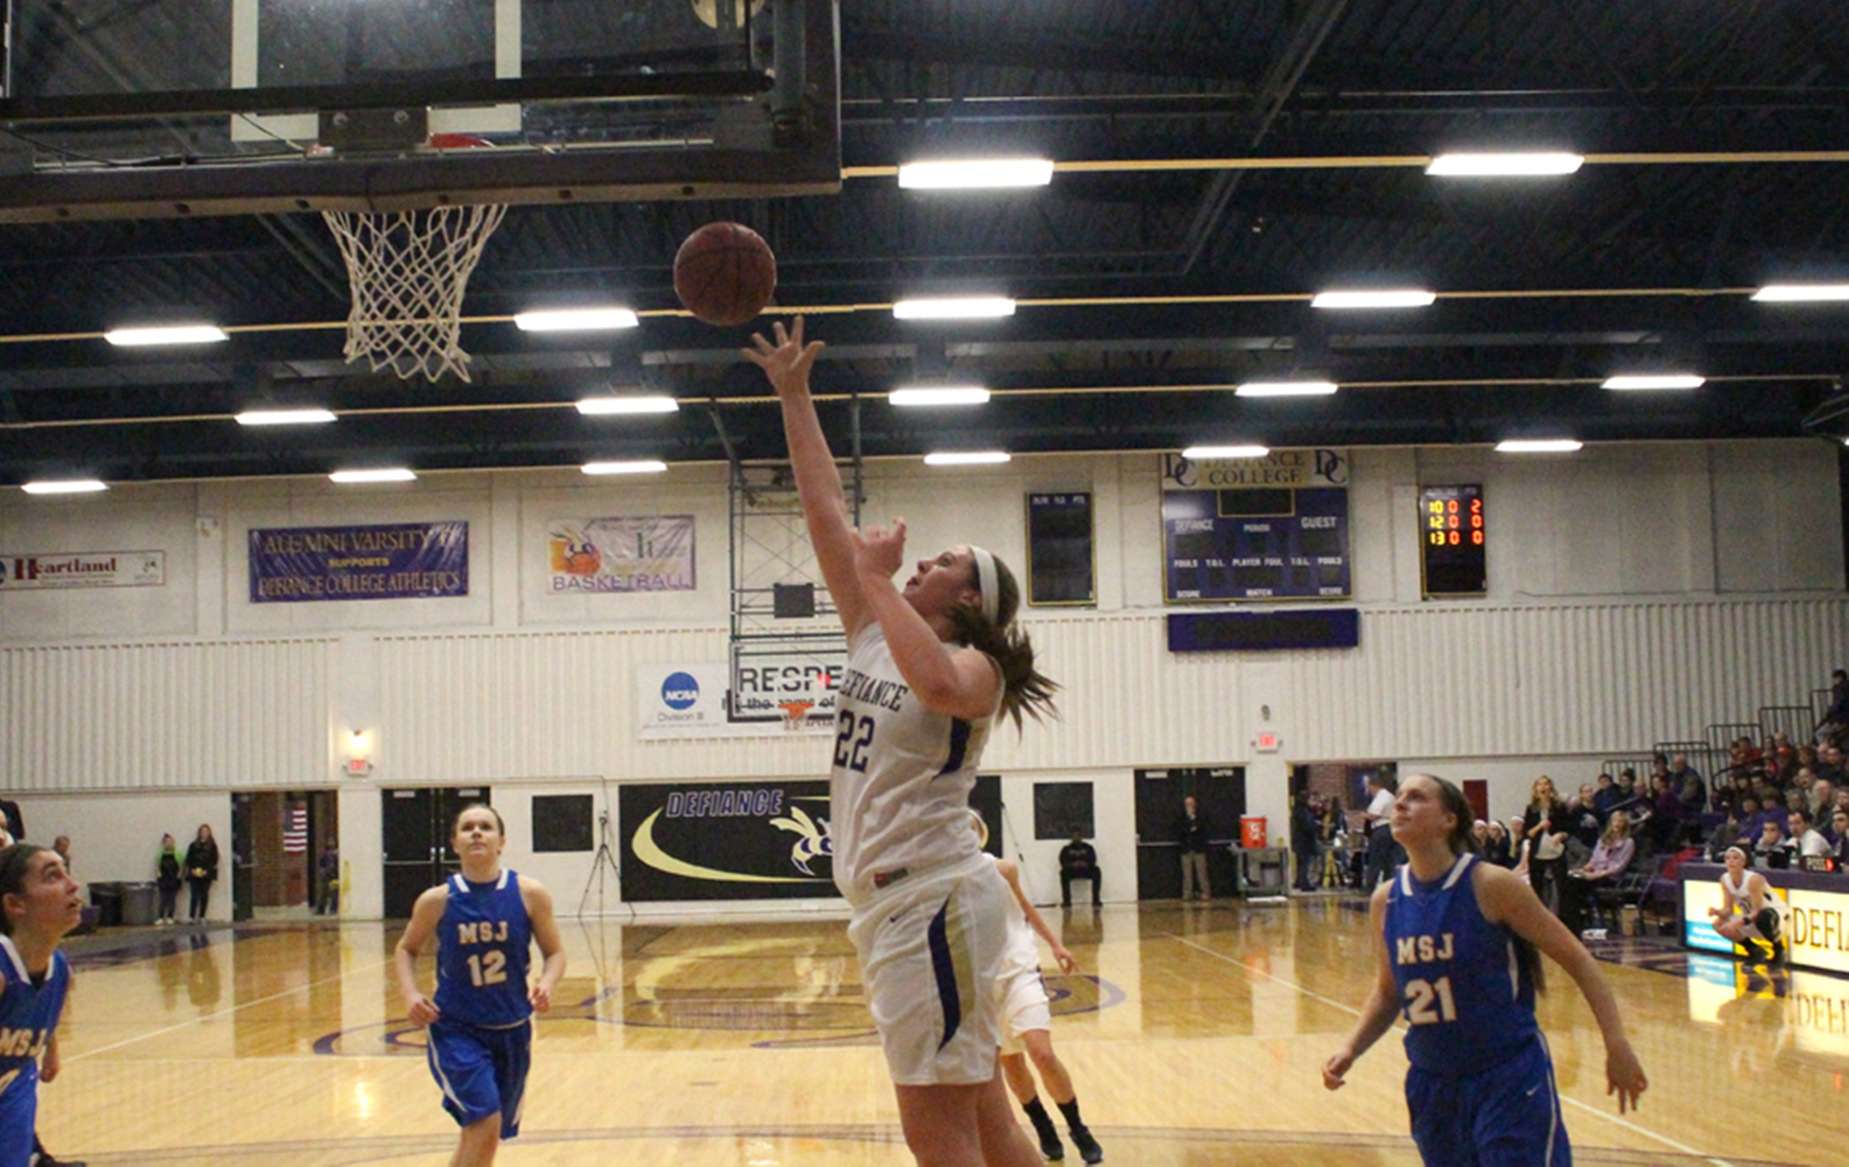 Turnover Troubles Haunt DC in Road Loss to MSJ